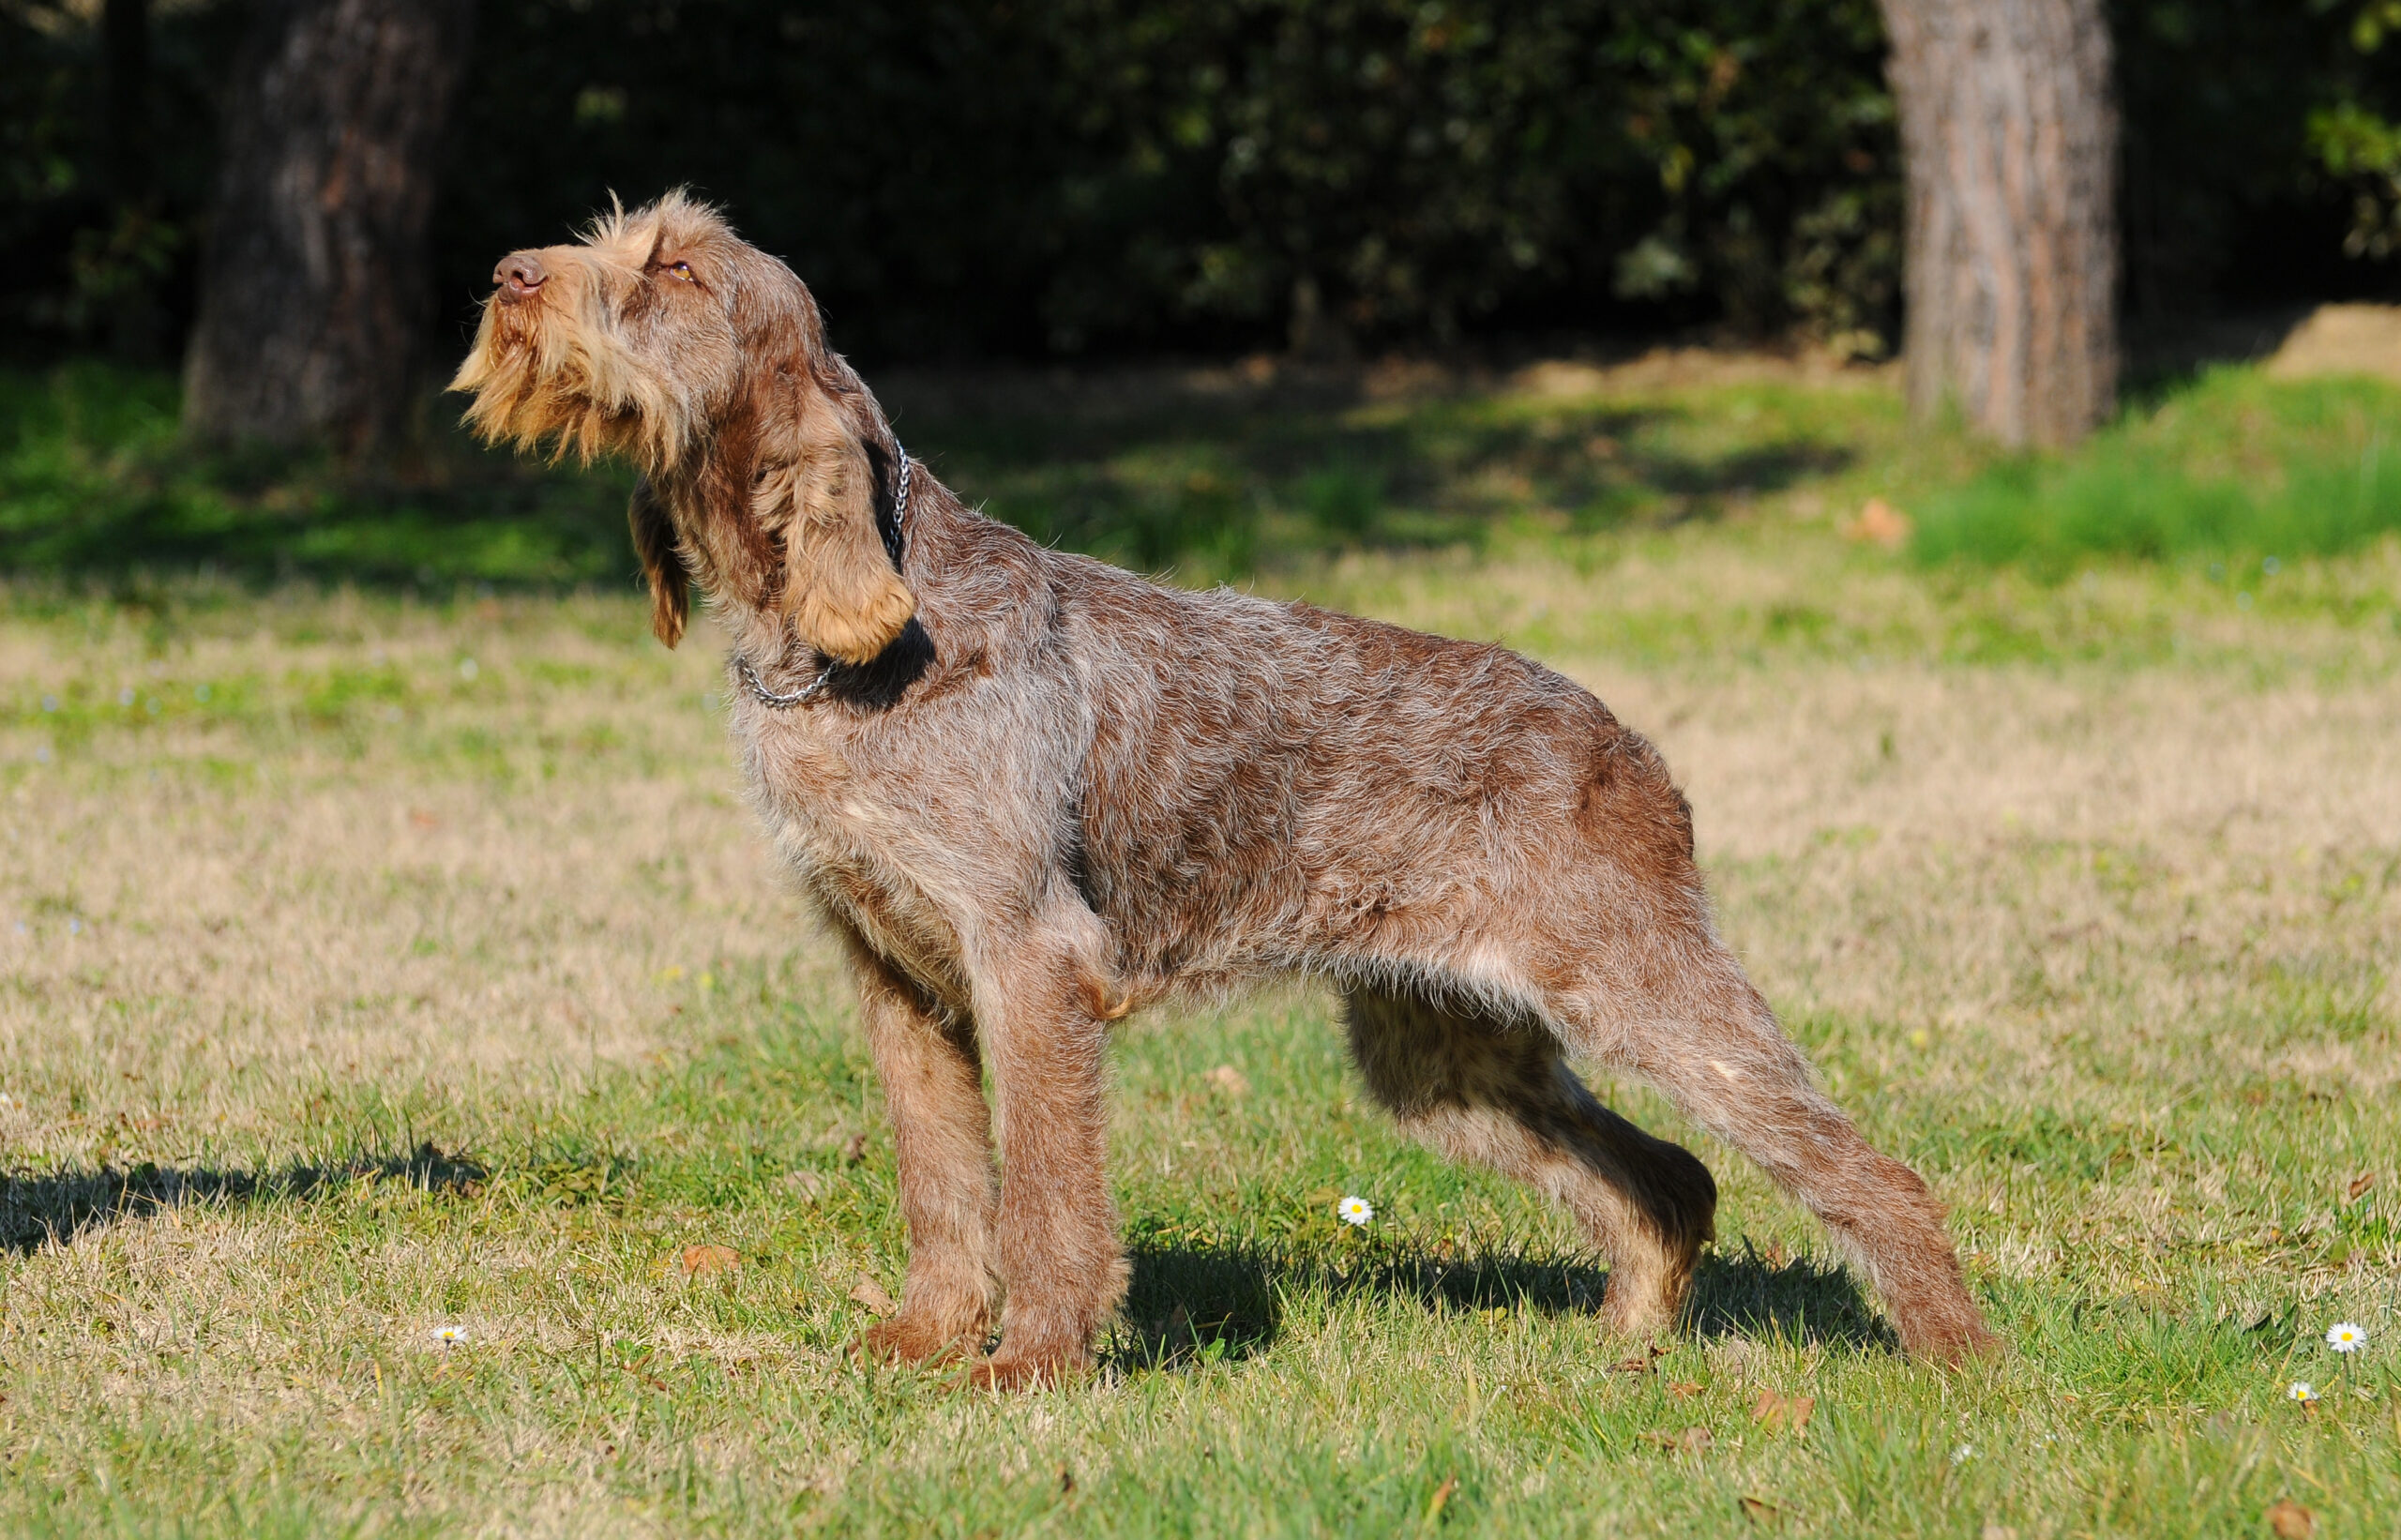 Brown Spinone Italiano dog standing outside in a grassy yard